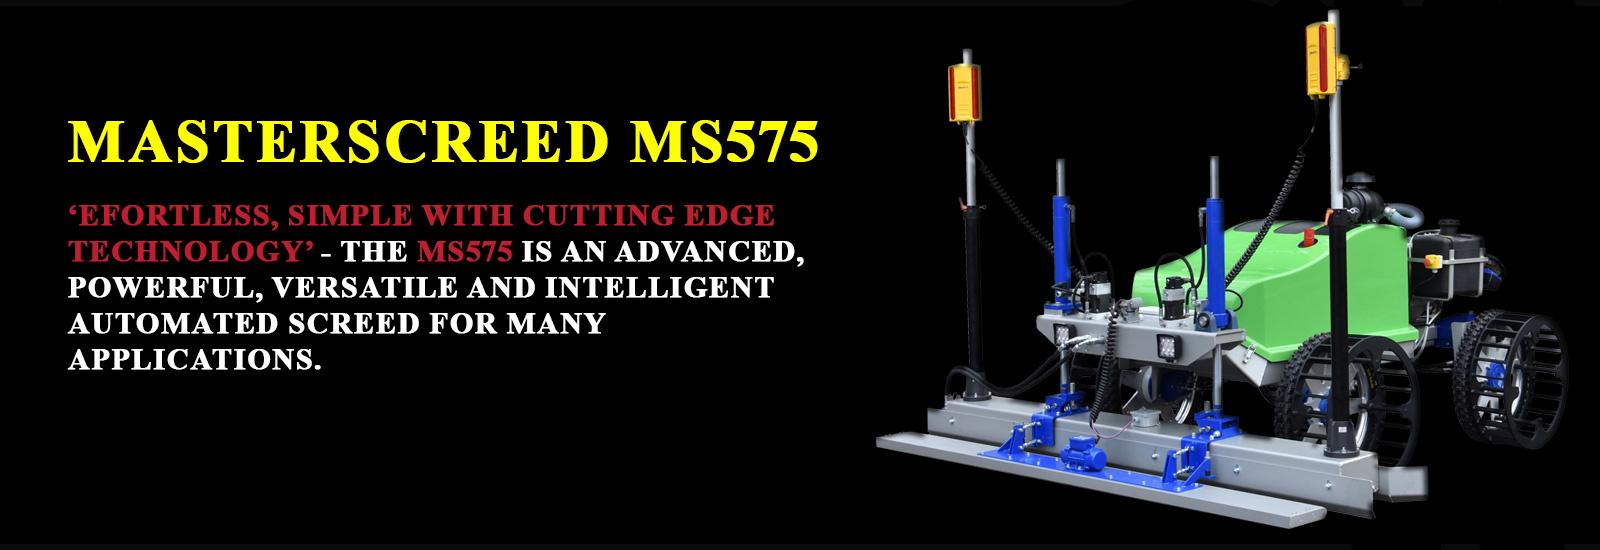 MS575 - Powerful, Versatile and Intelligent Automated Screed